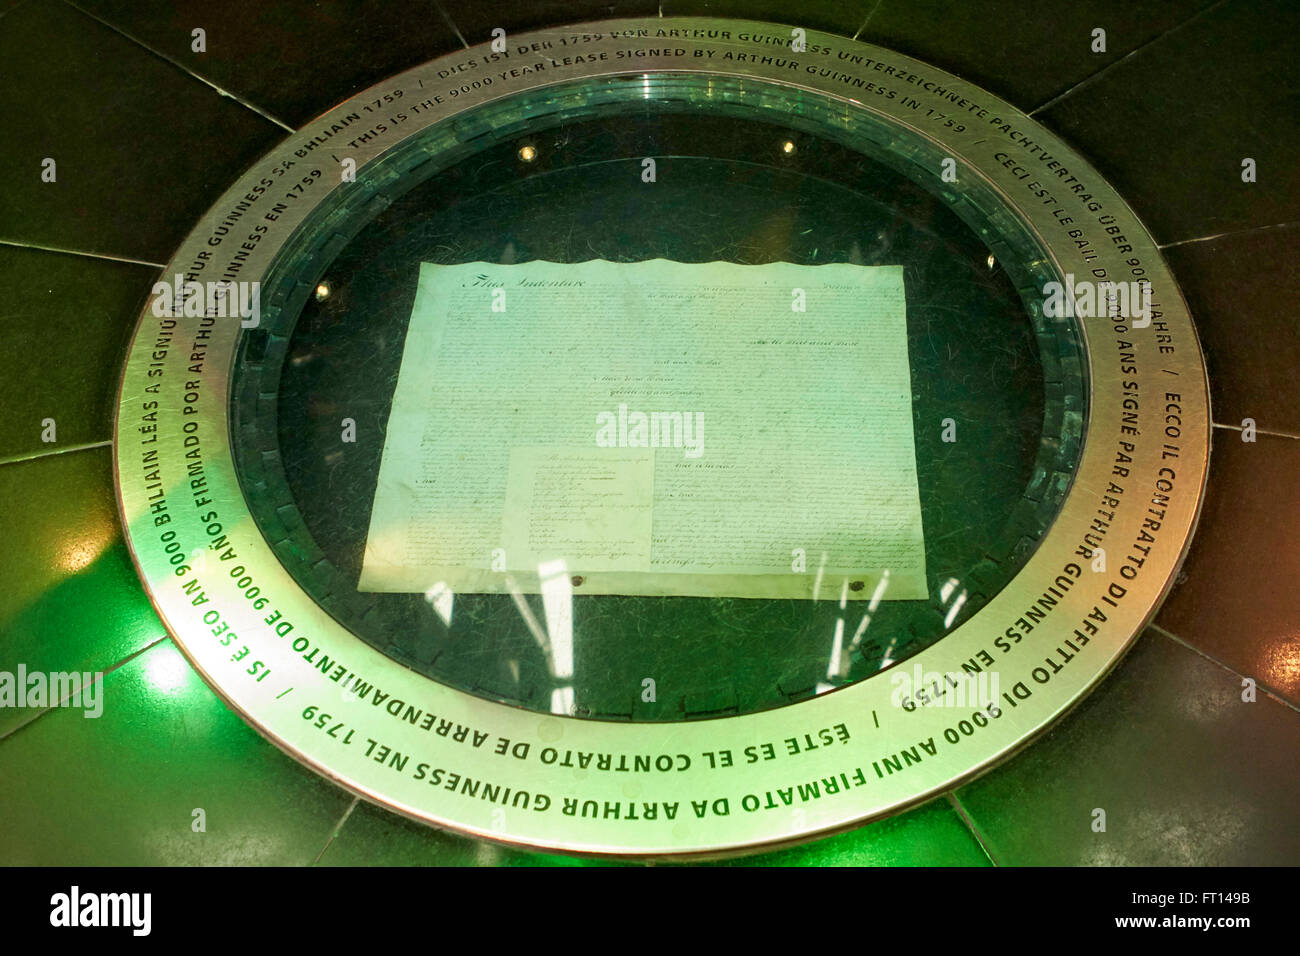 copy of arthur guinness's 9000 year lease in the guinness storehouse dublin Ireland - Stock Image